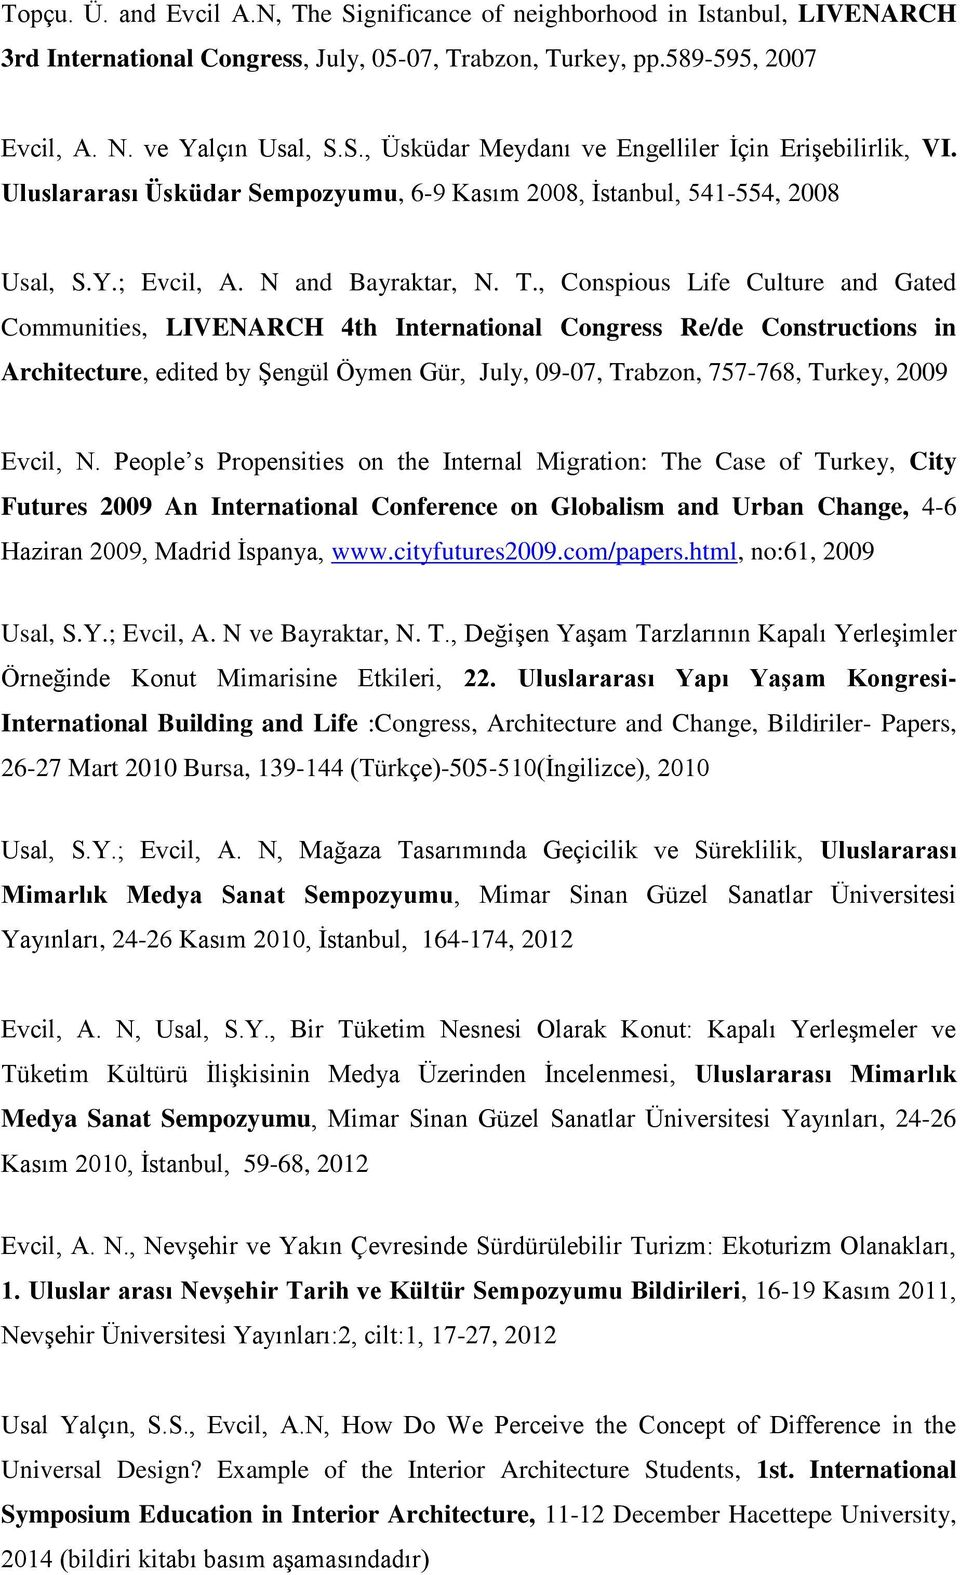 , Conspious Life Culture and Gated Communities, LIVENARCH 4th International Congress Re/de Constructions in Architecture, edited by Şengül Öymen Gür, July, 09-07, Trabzon, 757-768, Turkey, 2009